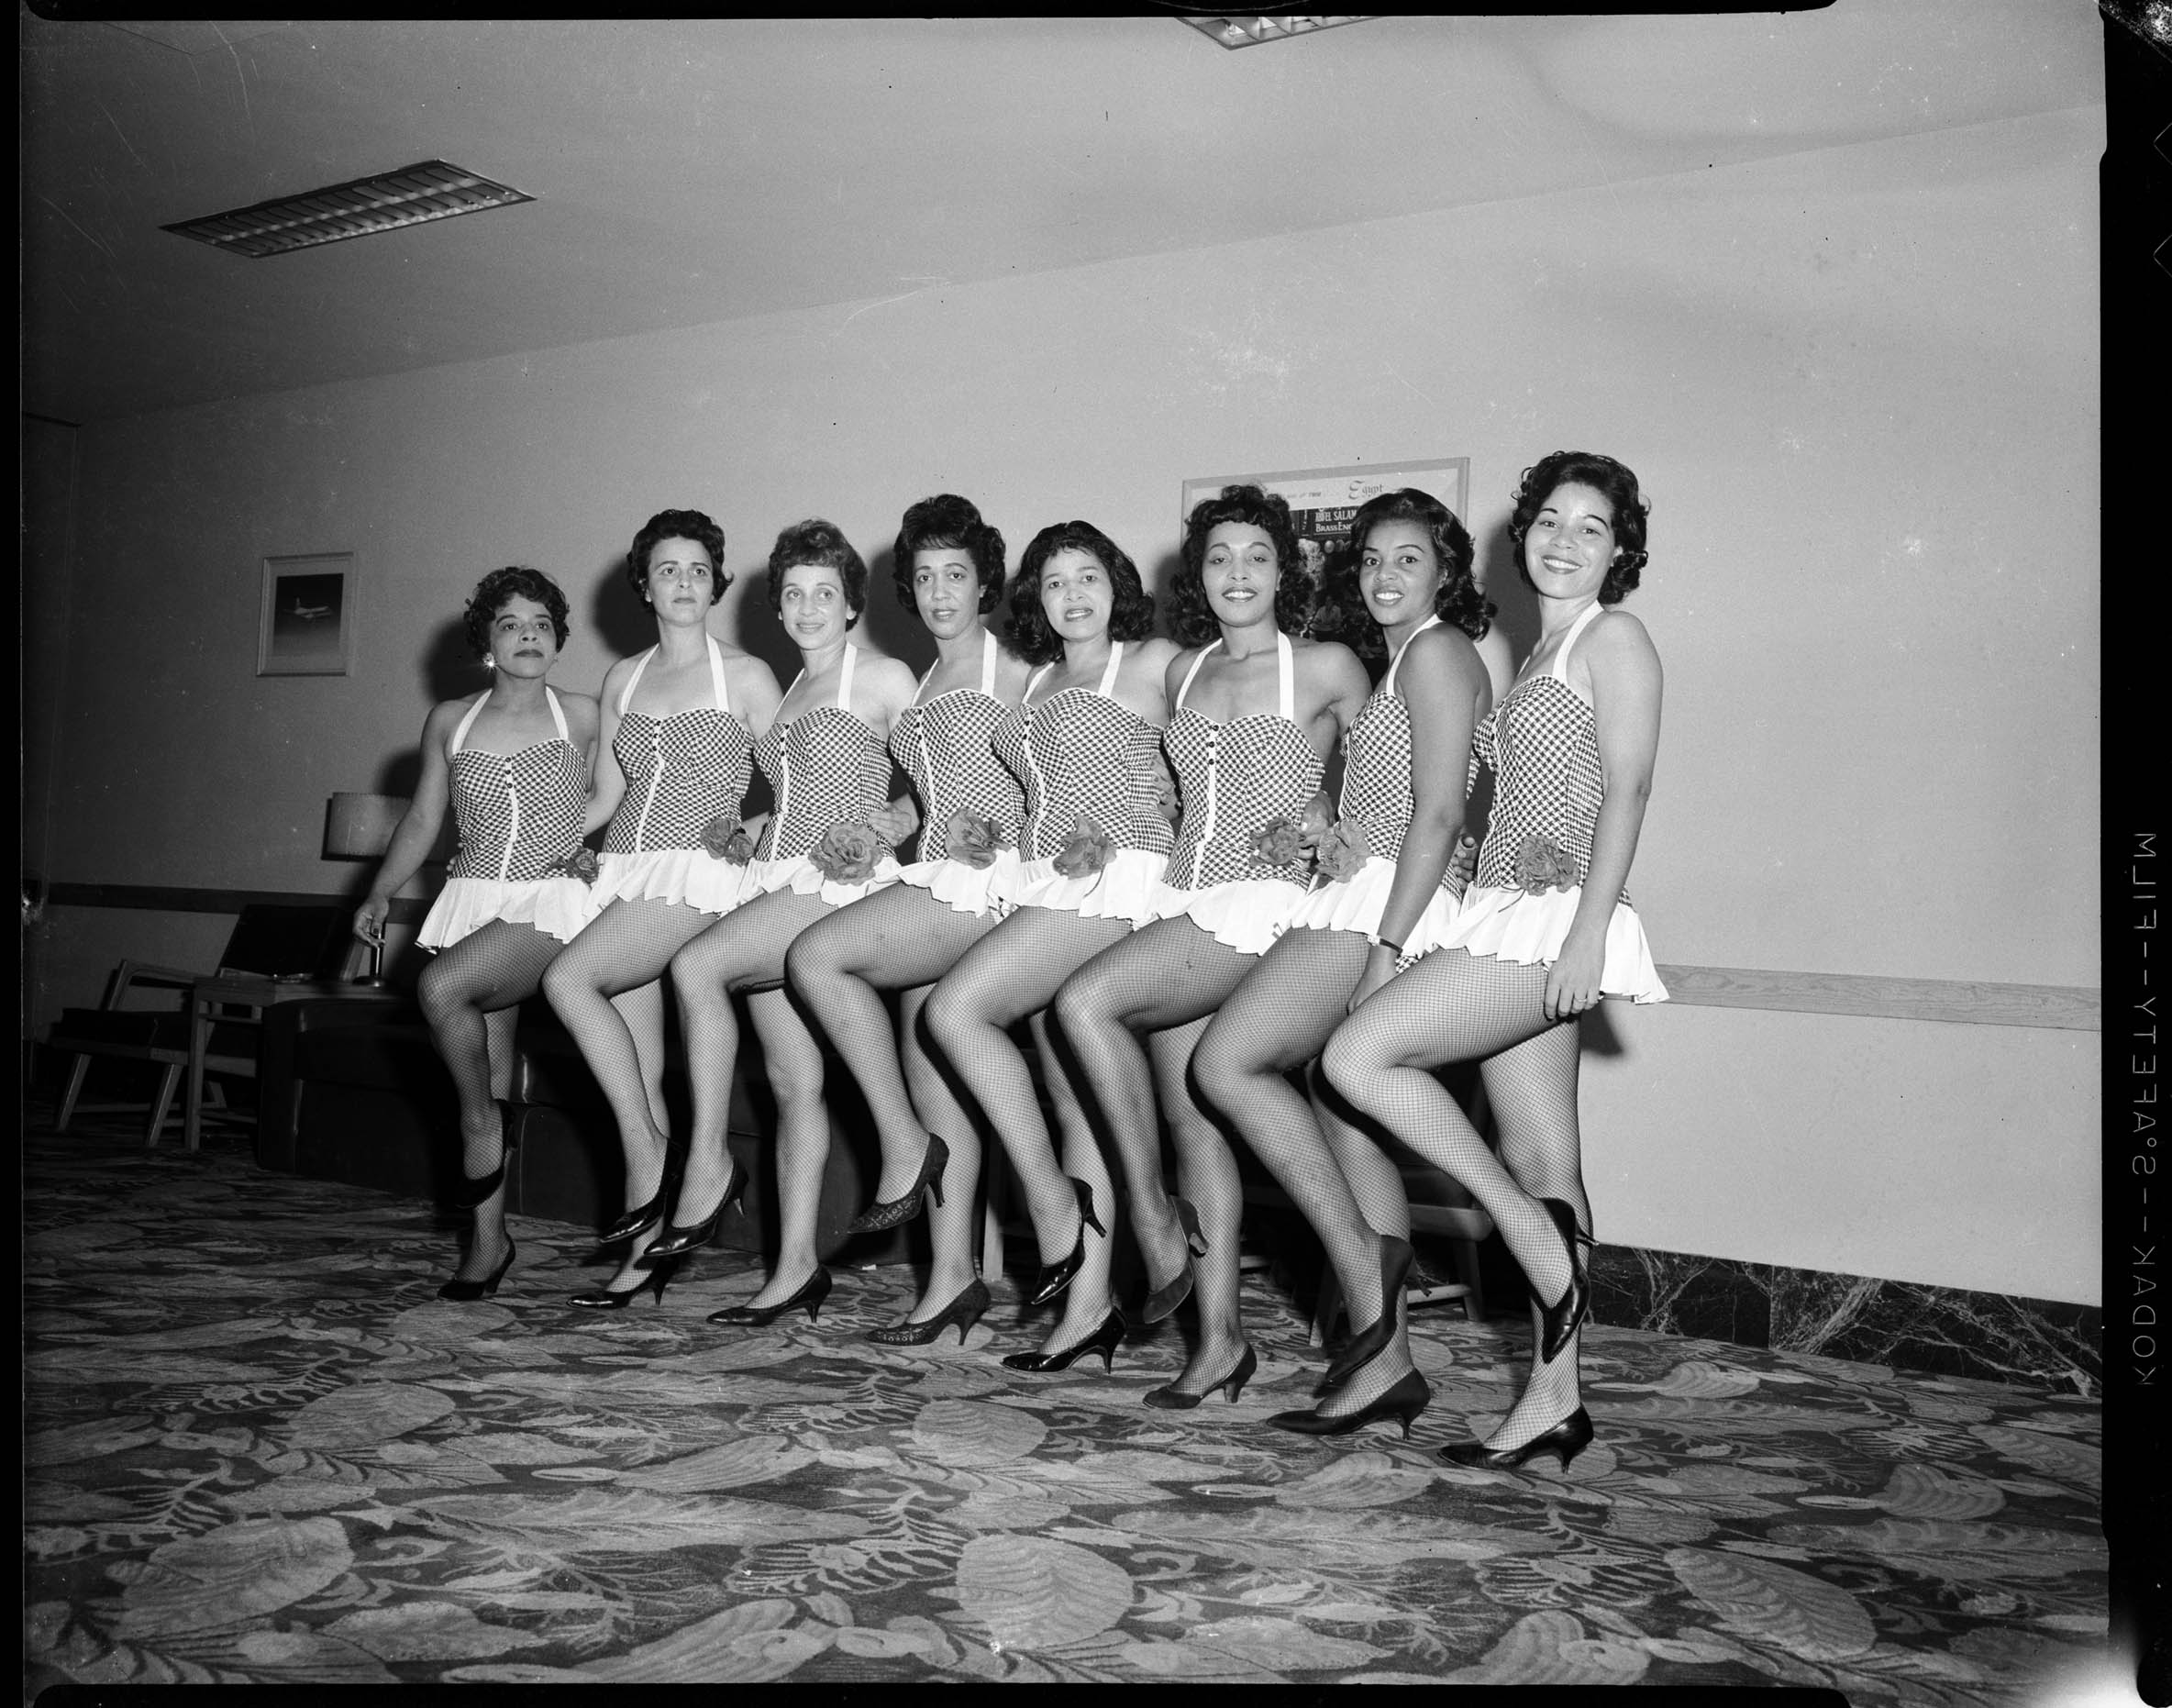 Members of Junior Mothers Association wearing dance costumes, from left: June Stokes, Dolores McCoy Taylor, Evelyn Anderson, Alma Speed Fox, Betty Tibbs, Lois Weaver Watson, Phyllis Pitts, and Frances Bell Nunn, posed in Horizon Room, Aug. - Sept. 1961.